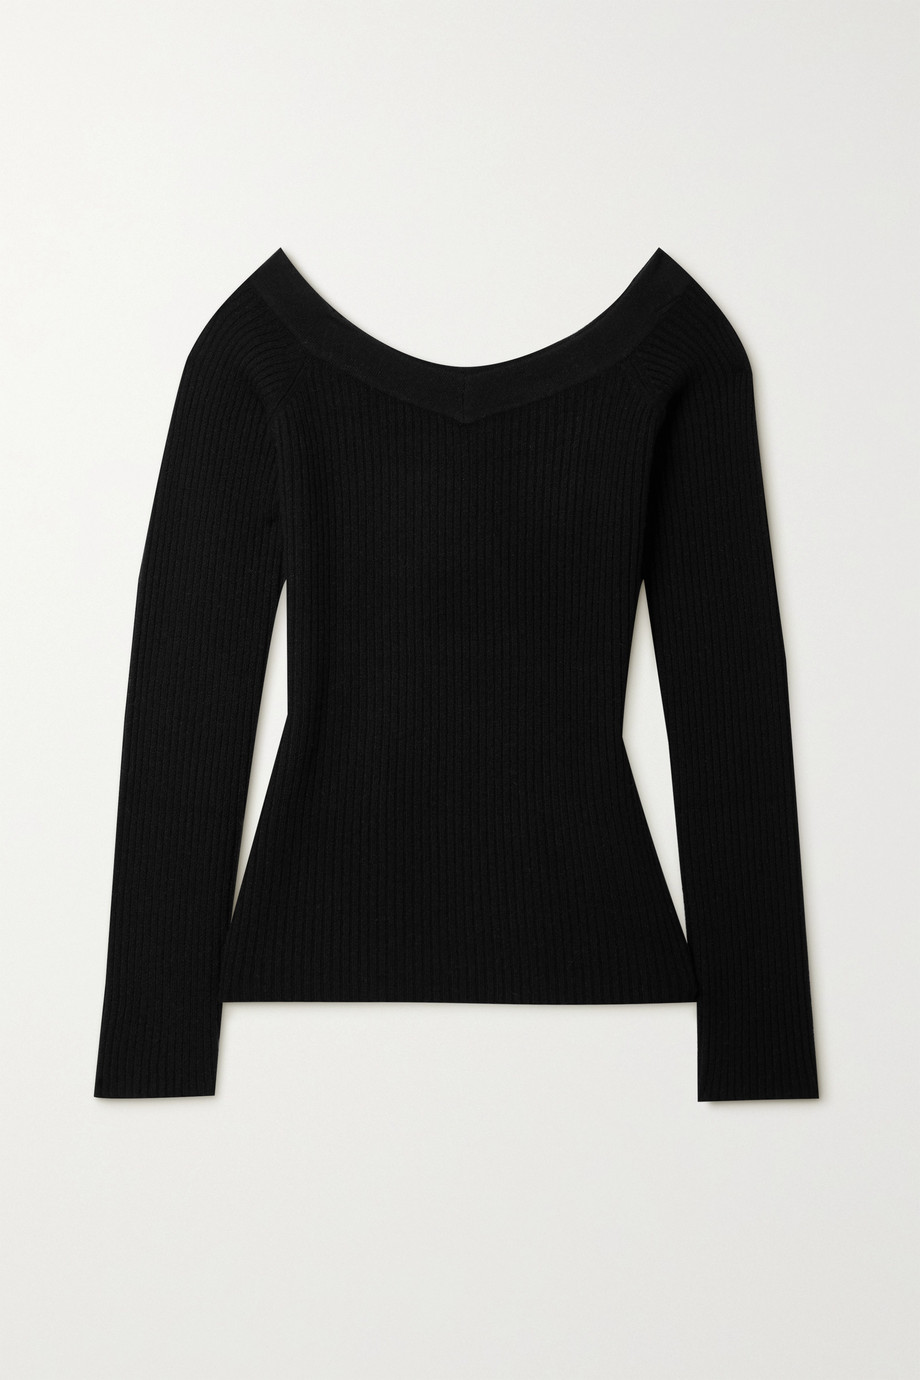 LAPOINTE + NET SUSTAIN off-the-shoulder ribbed organic cashmere sweater